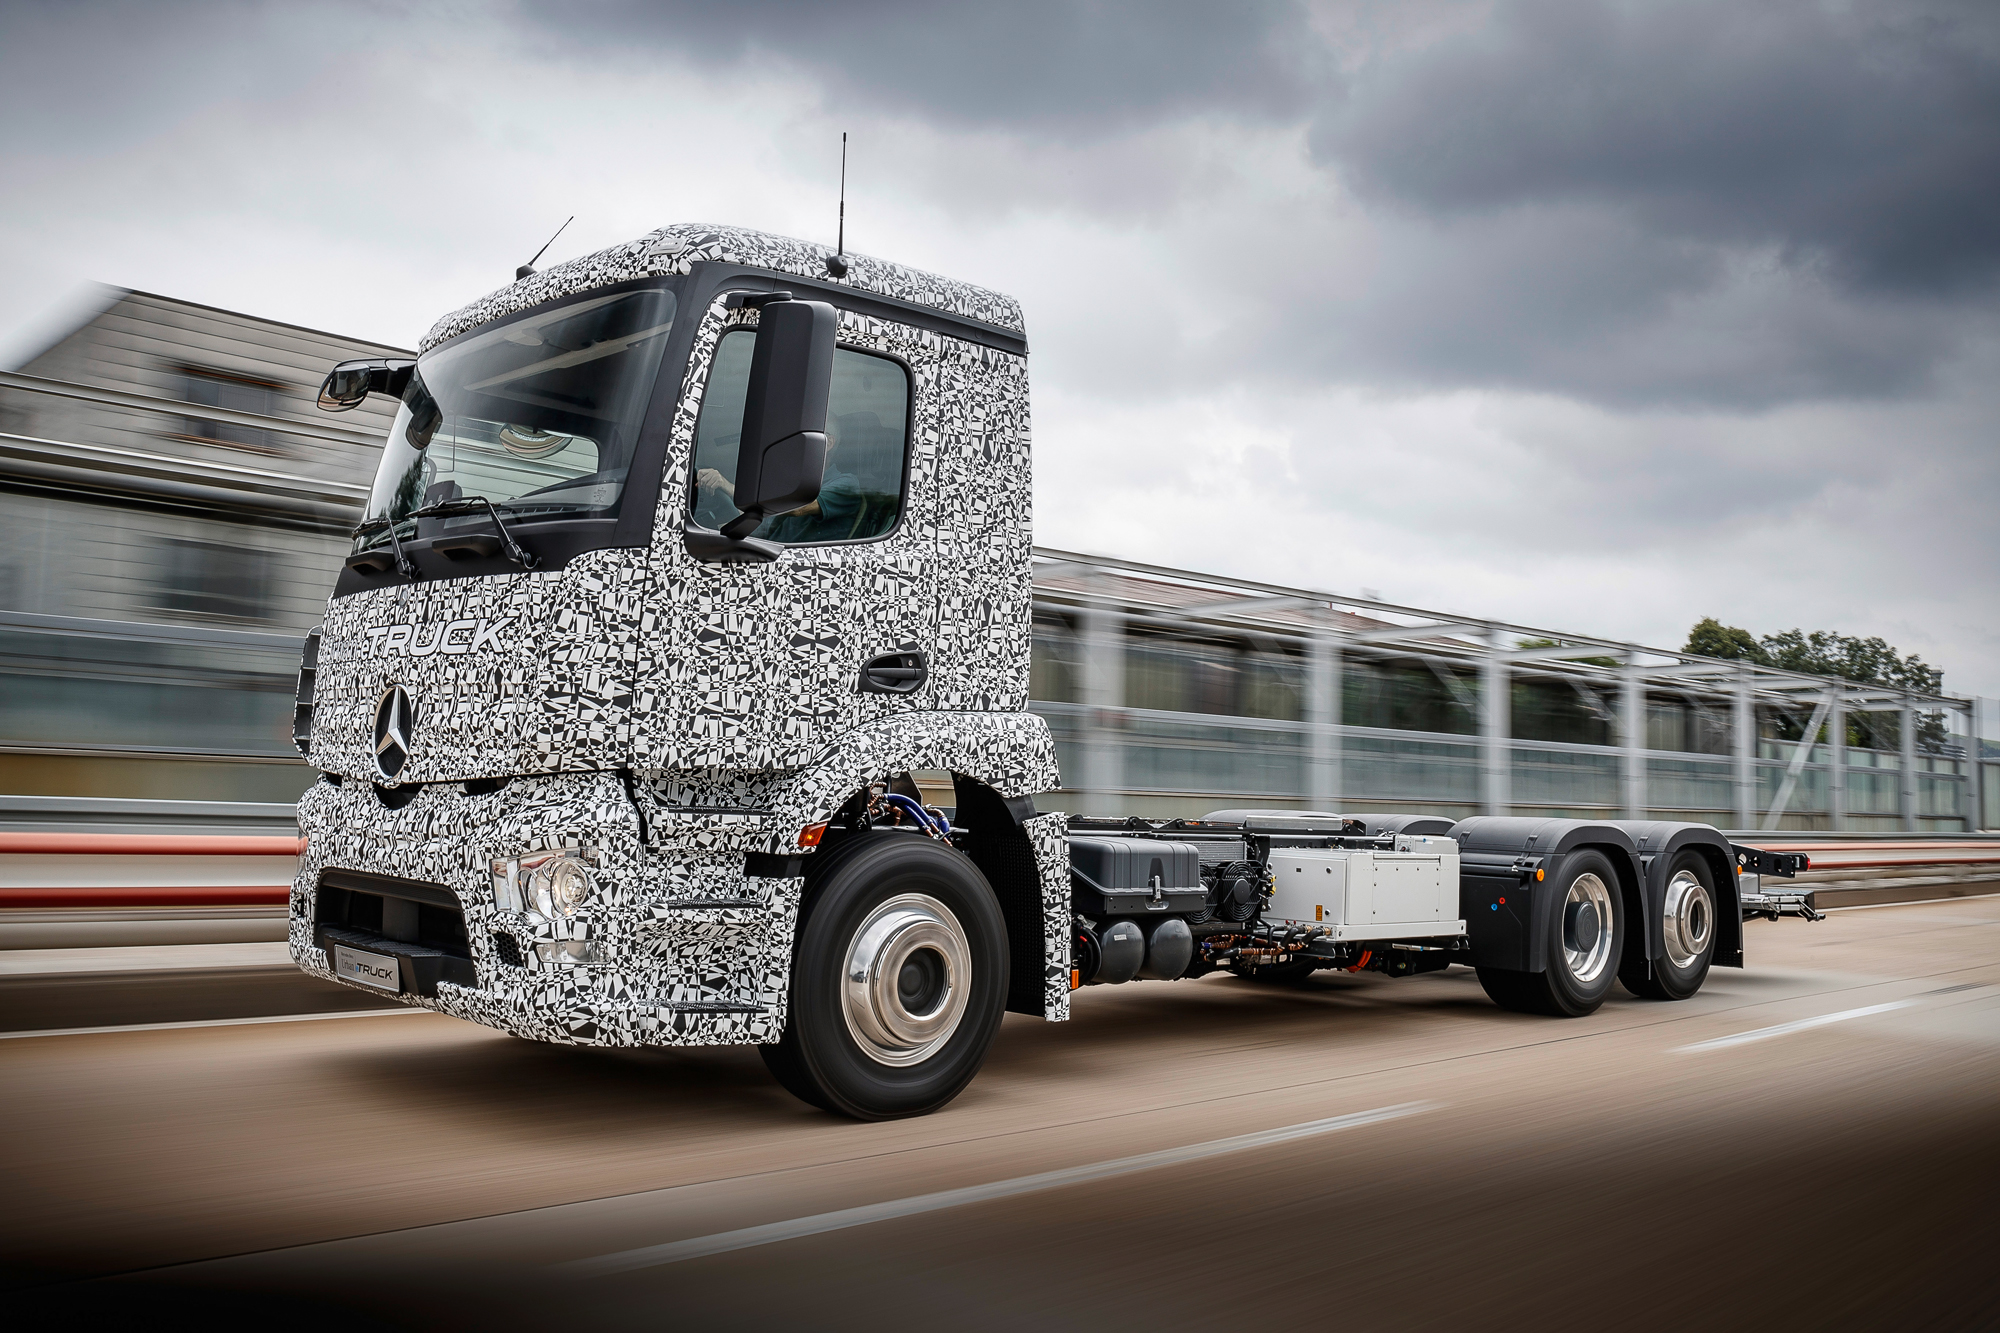 The prototype of the Urban eTruck electric truck from Mercedes-Benz 48